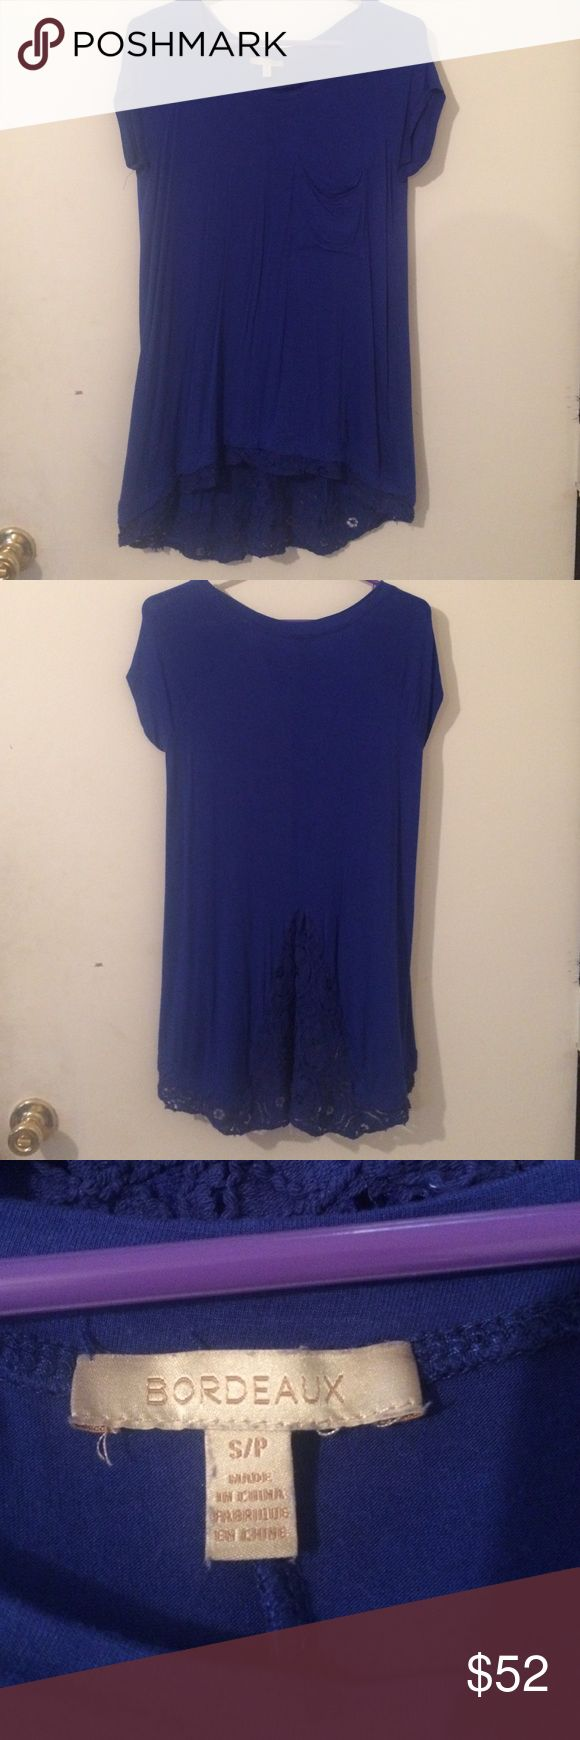 💃🏻just in Bordeaux tunic/dress Gorgeous electric blue dress by Bordeaux for Urban Outfitters can be worn as a tunic with leggings or jeans -insert of lace at back which becomes trim along bottom of the dress S/p , tshirt style with front pocket & crew neckline Urban Outfitters Dresses